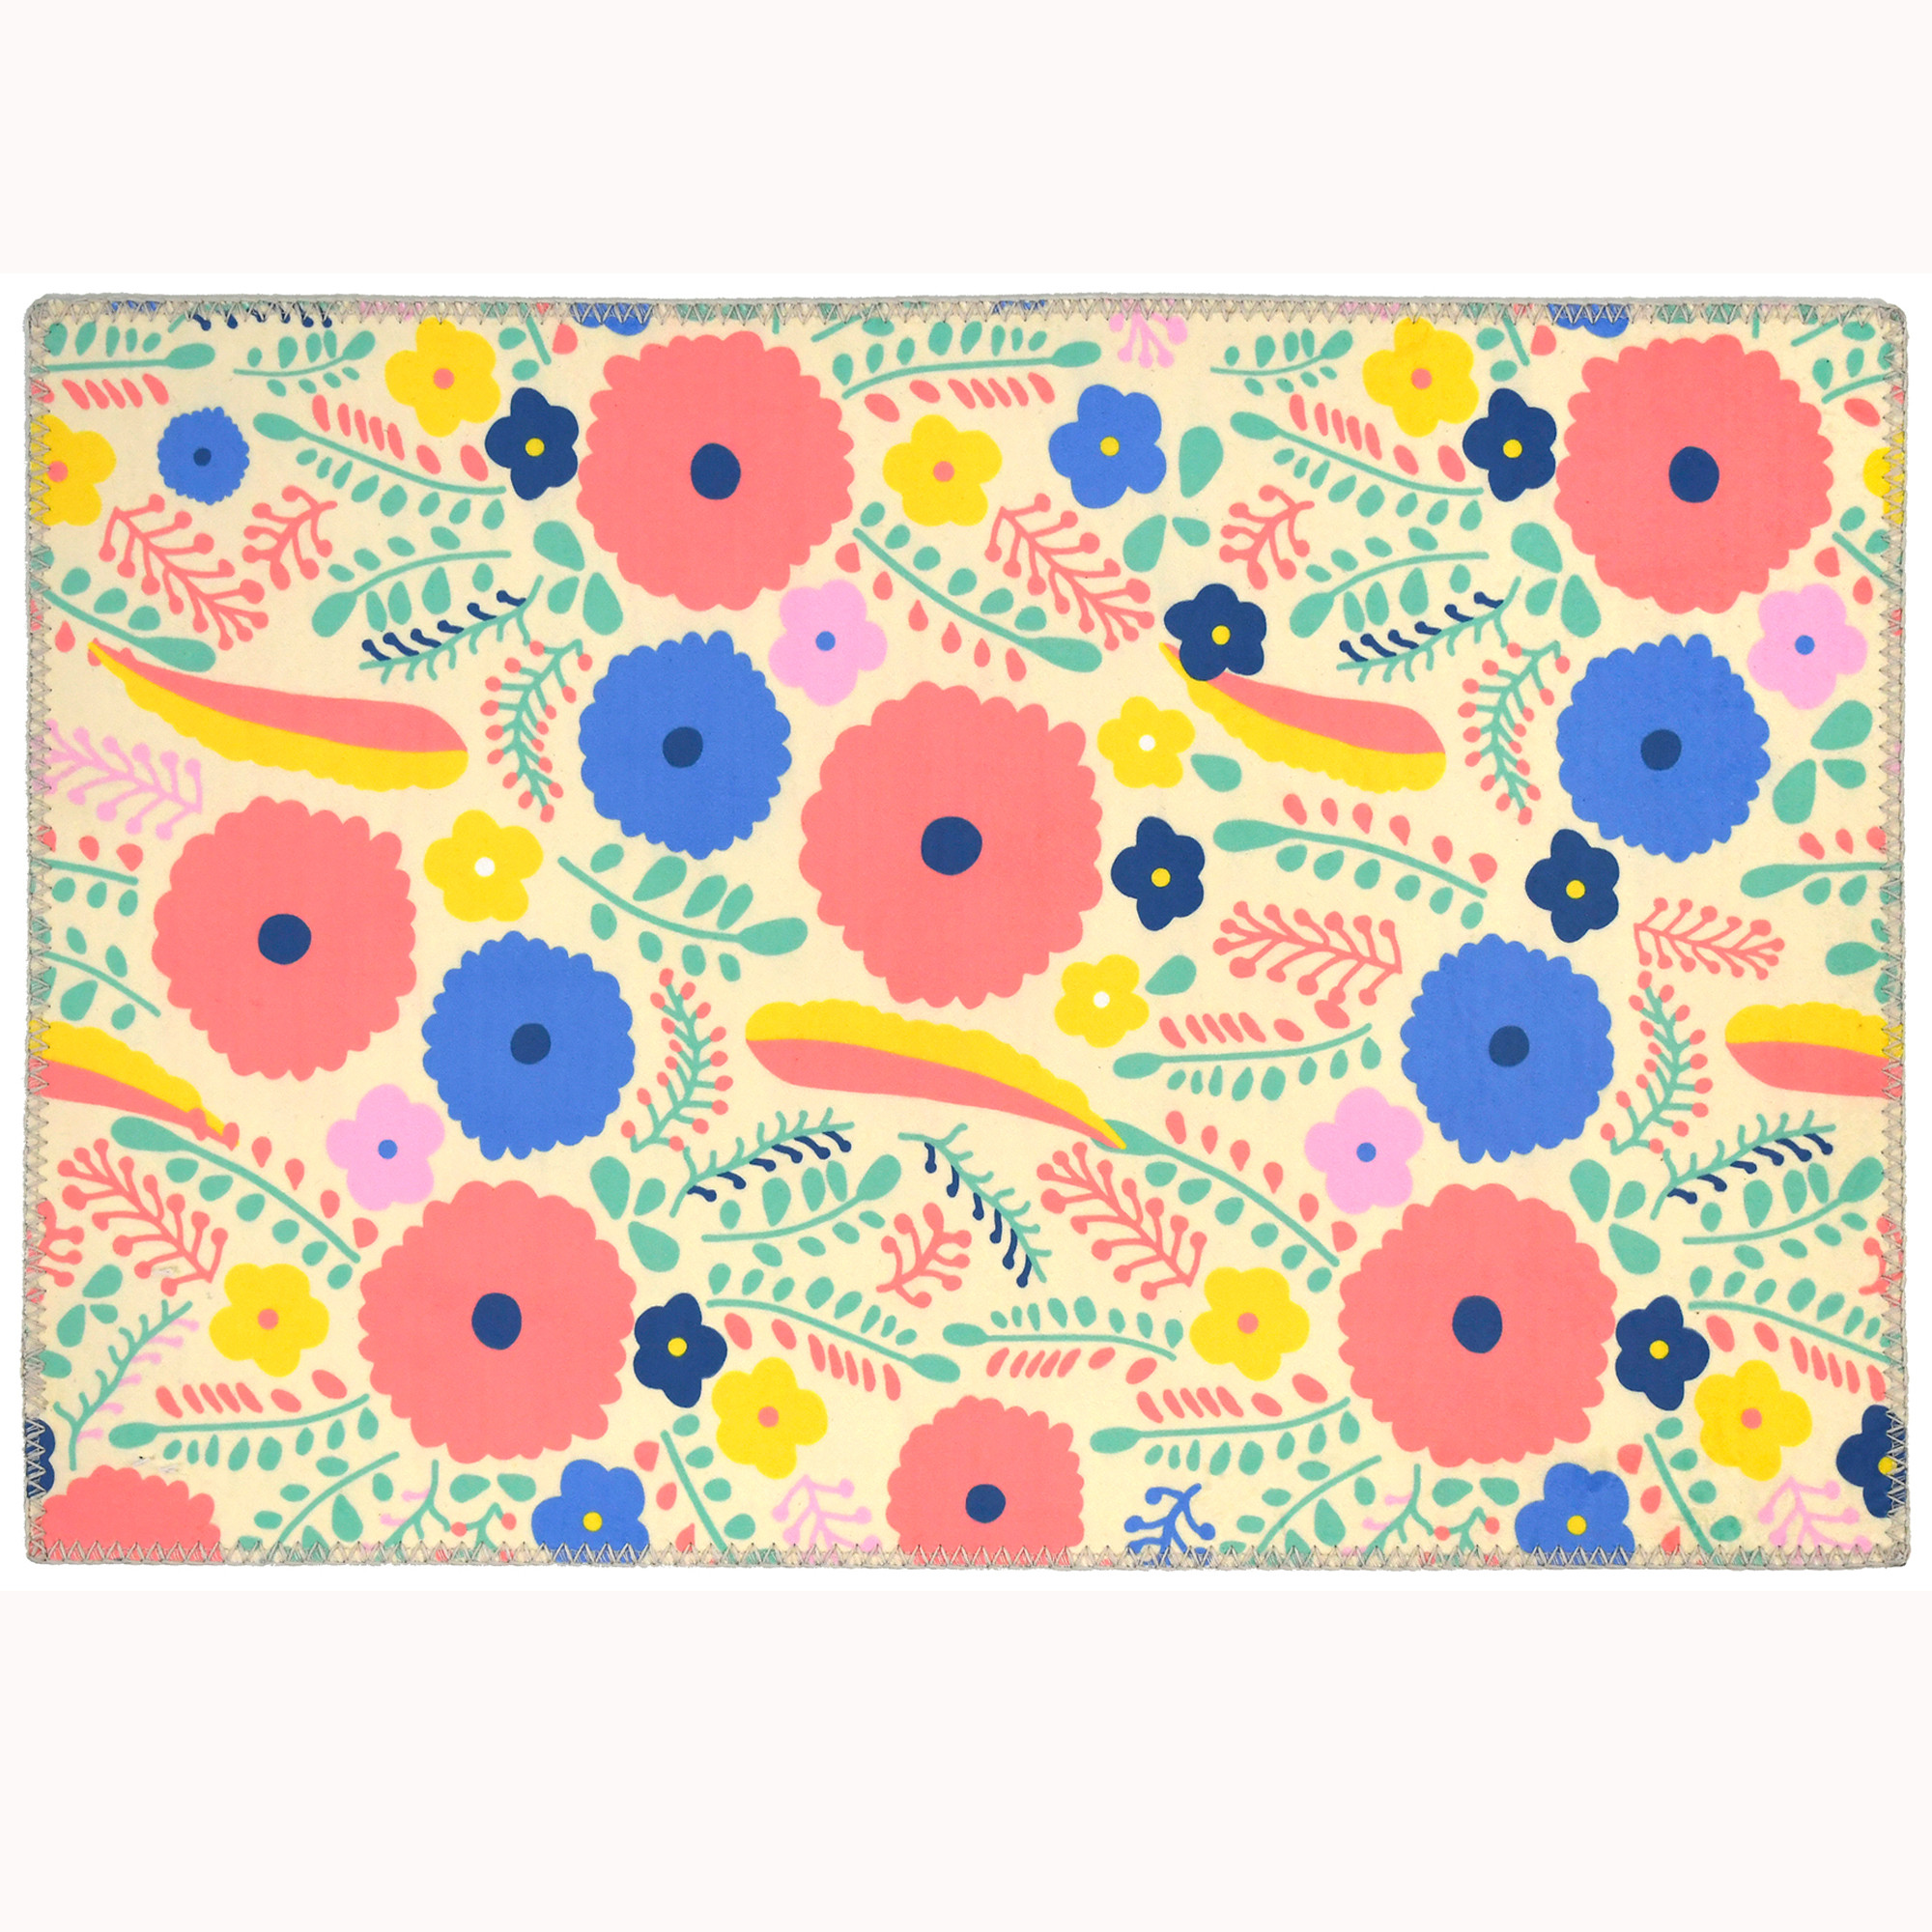 Colorful buds, blooms, and feathers swirl against the pale background of this Homefires by Jellybean® poly-suede floor cloth. The whimsical, hippie feel by designer Sara B. has been captured on a machine washable floor cloth. Available in four sizes, this suede feel floor cloth will smooth the friction between floors and furniture.